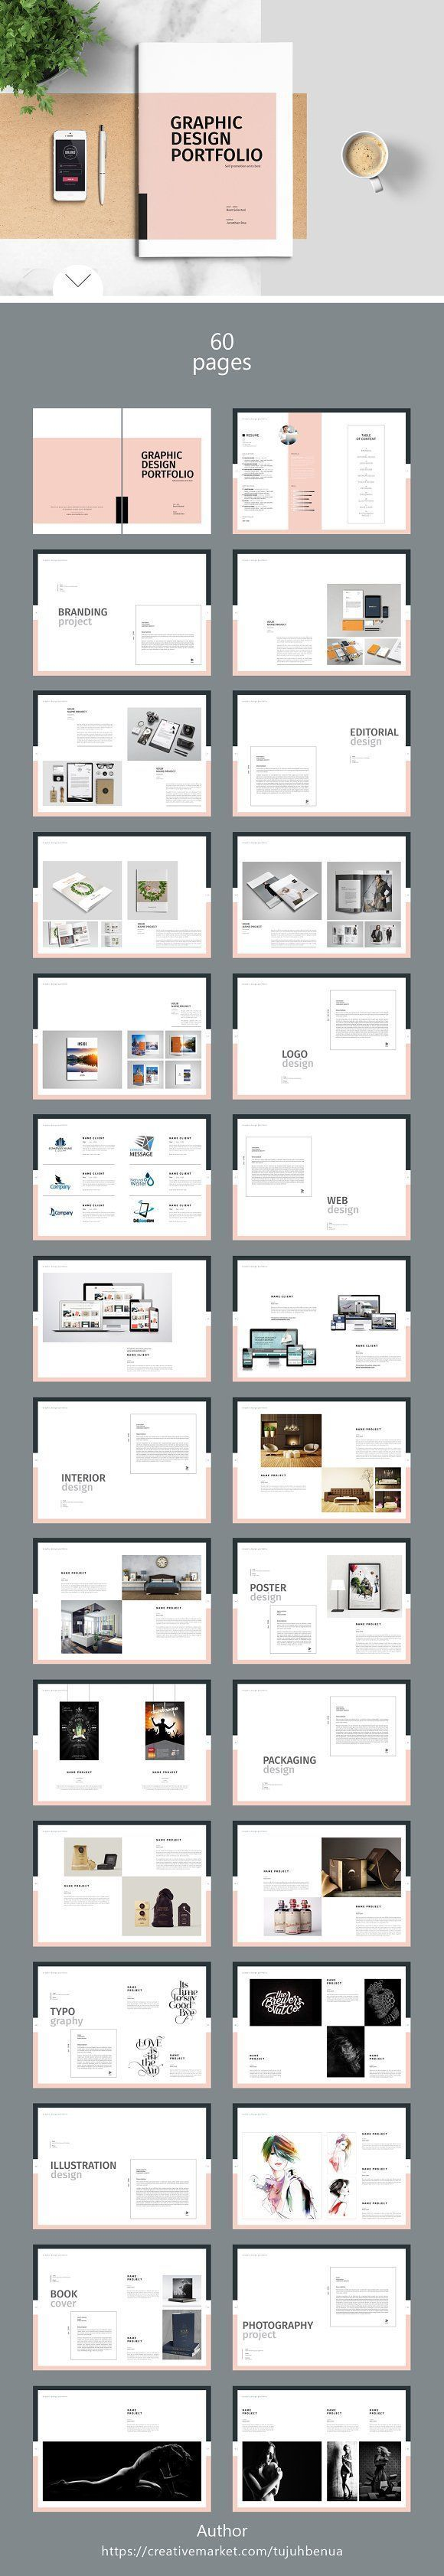 Graphic Design Portfolio Template by tujuhbenua on @creativemarket Ready for Print Magazine and Brochure template creative design and great covers, perfect for modern and stylish corporate appearance for business companies. Modern, simple, clean, minimal and feminine layout inspiration to grab some ideas.